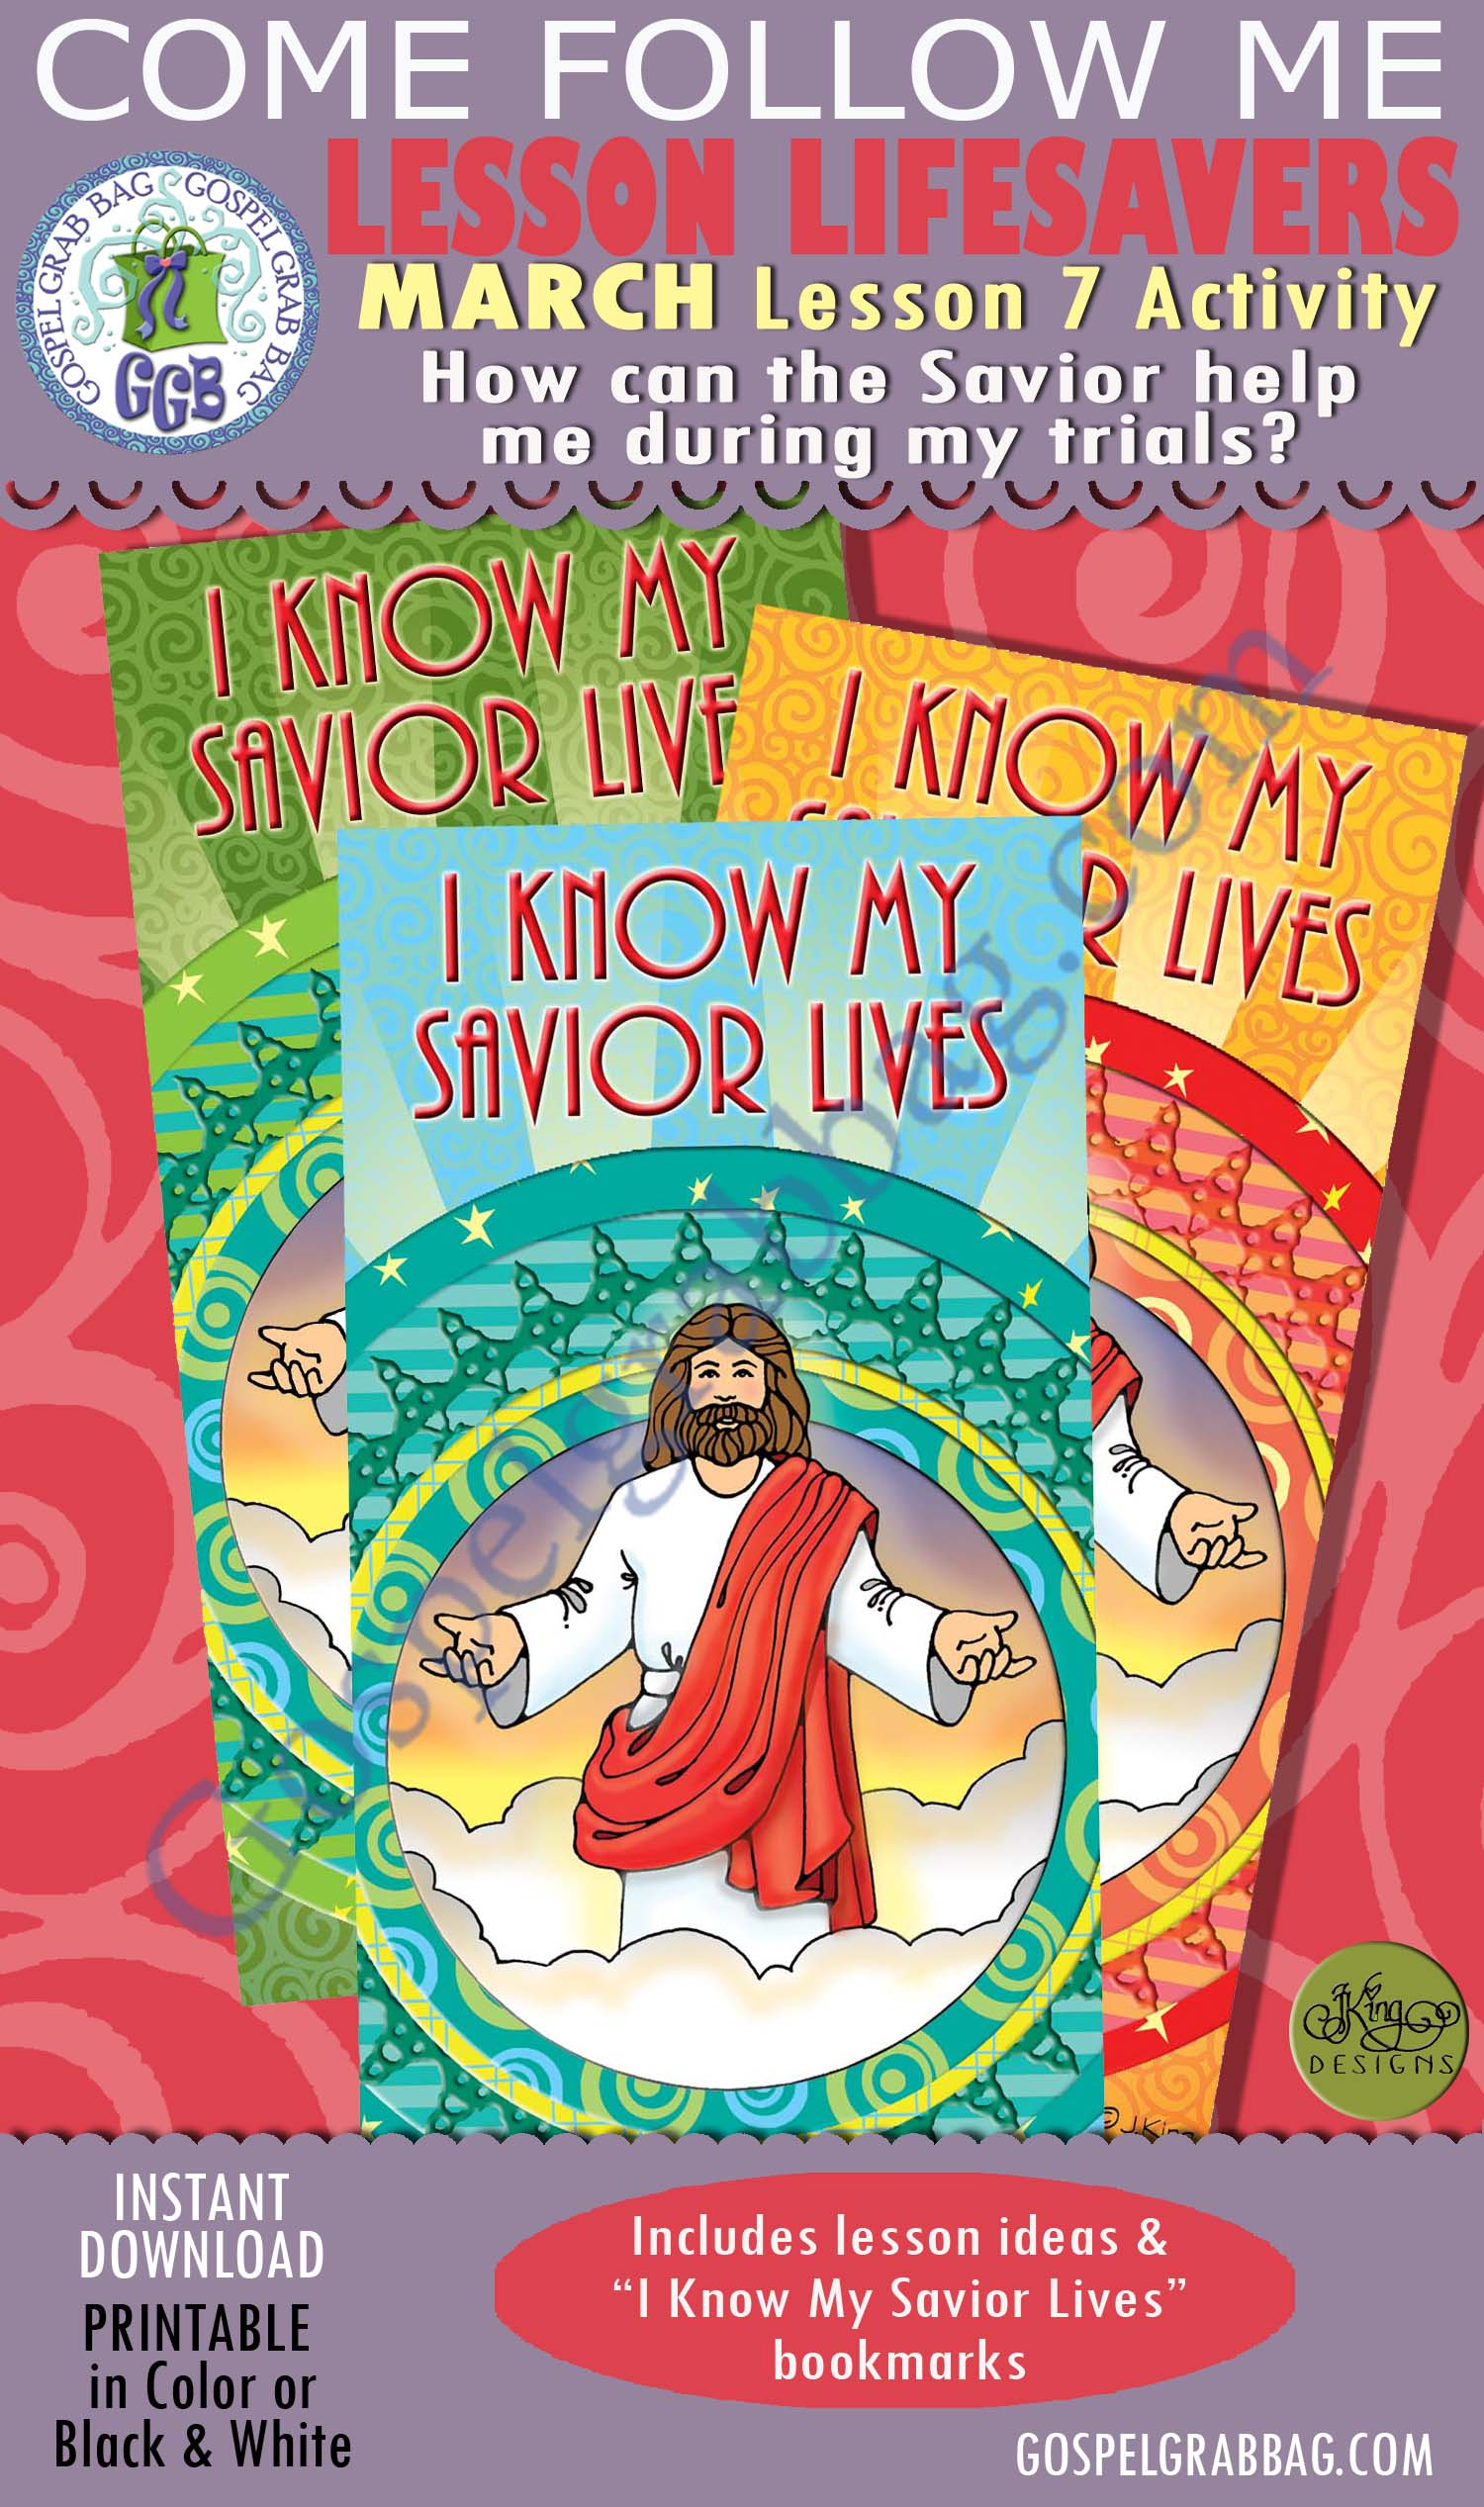 """$1.75 MARCH Lesson 7 Come Follow Me """"How can the Savior help me during my trials?"""" ACTIVITY: I Know My Savior Lives bookmarks, Young Women handouts, GospelGrabBag.com, LDS Printables"""